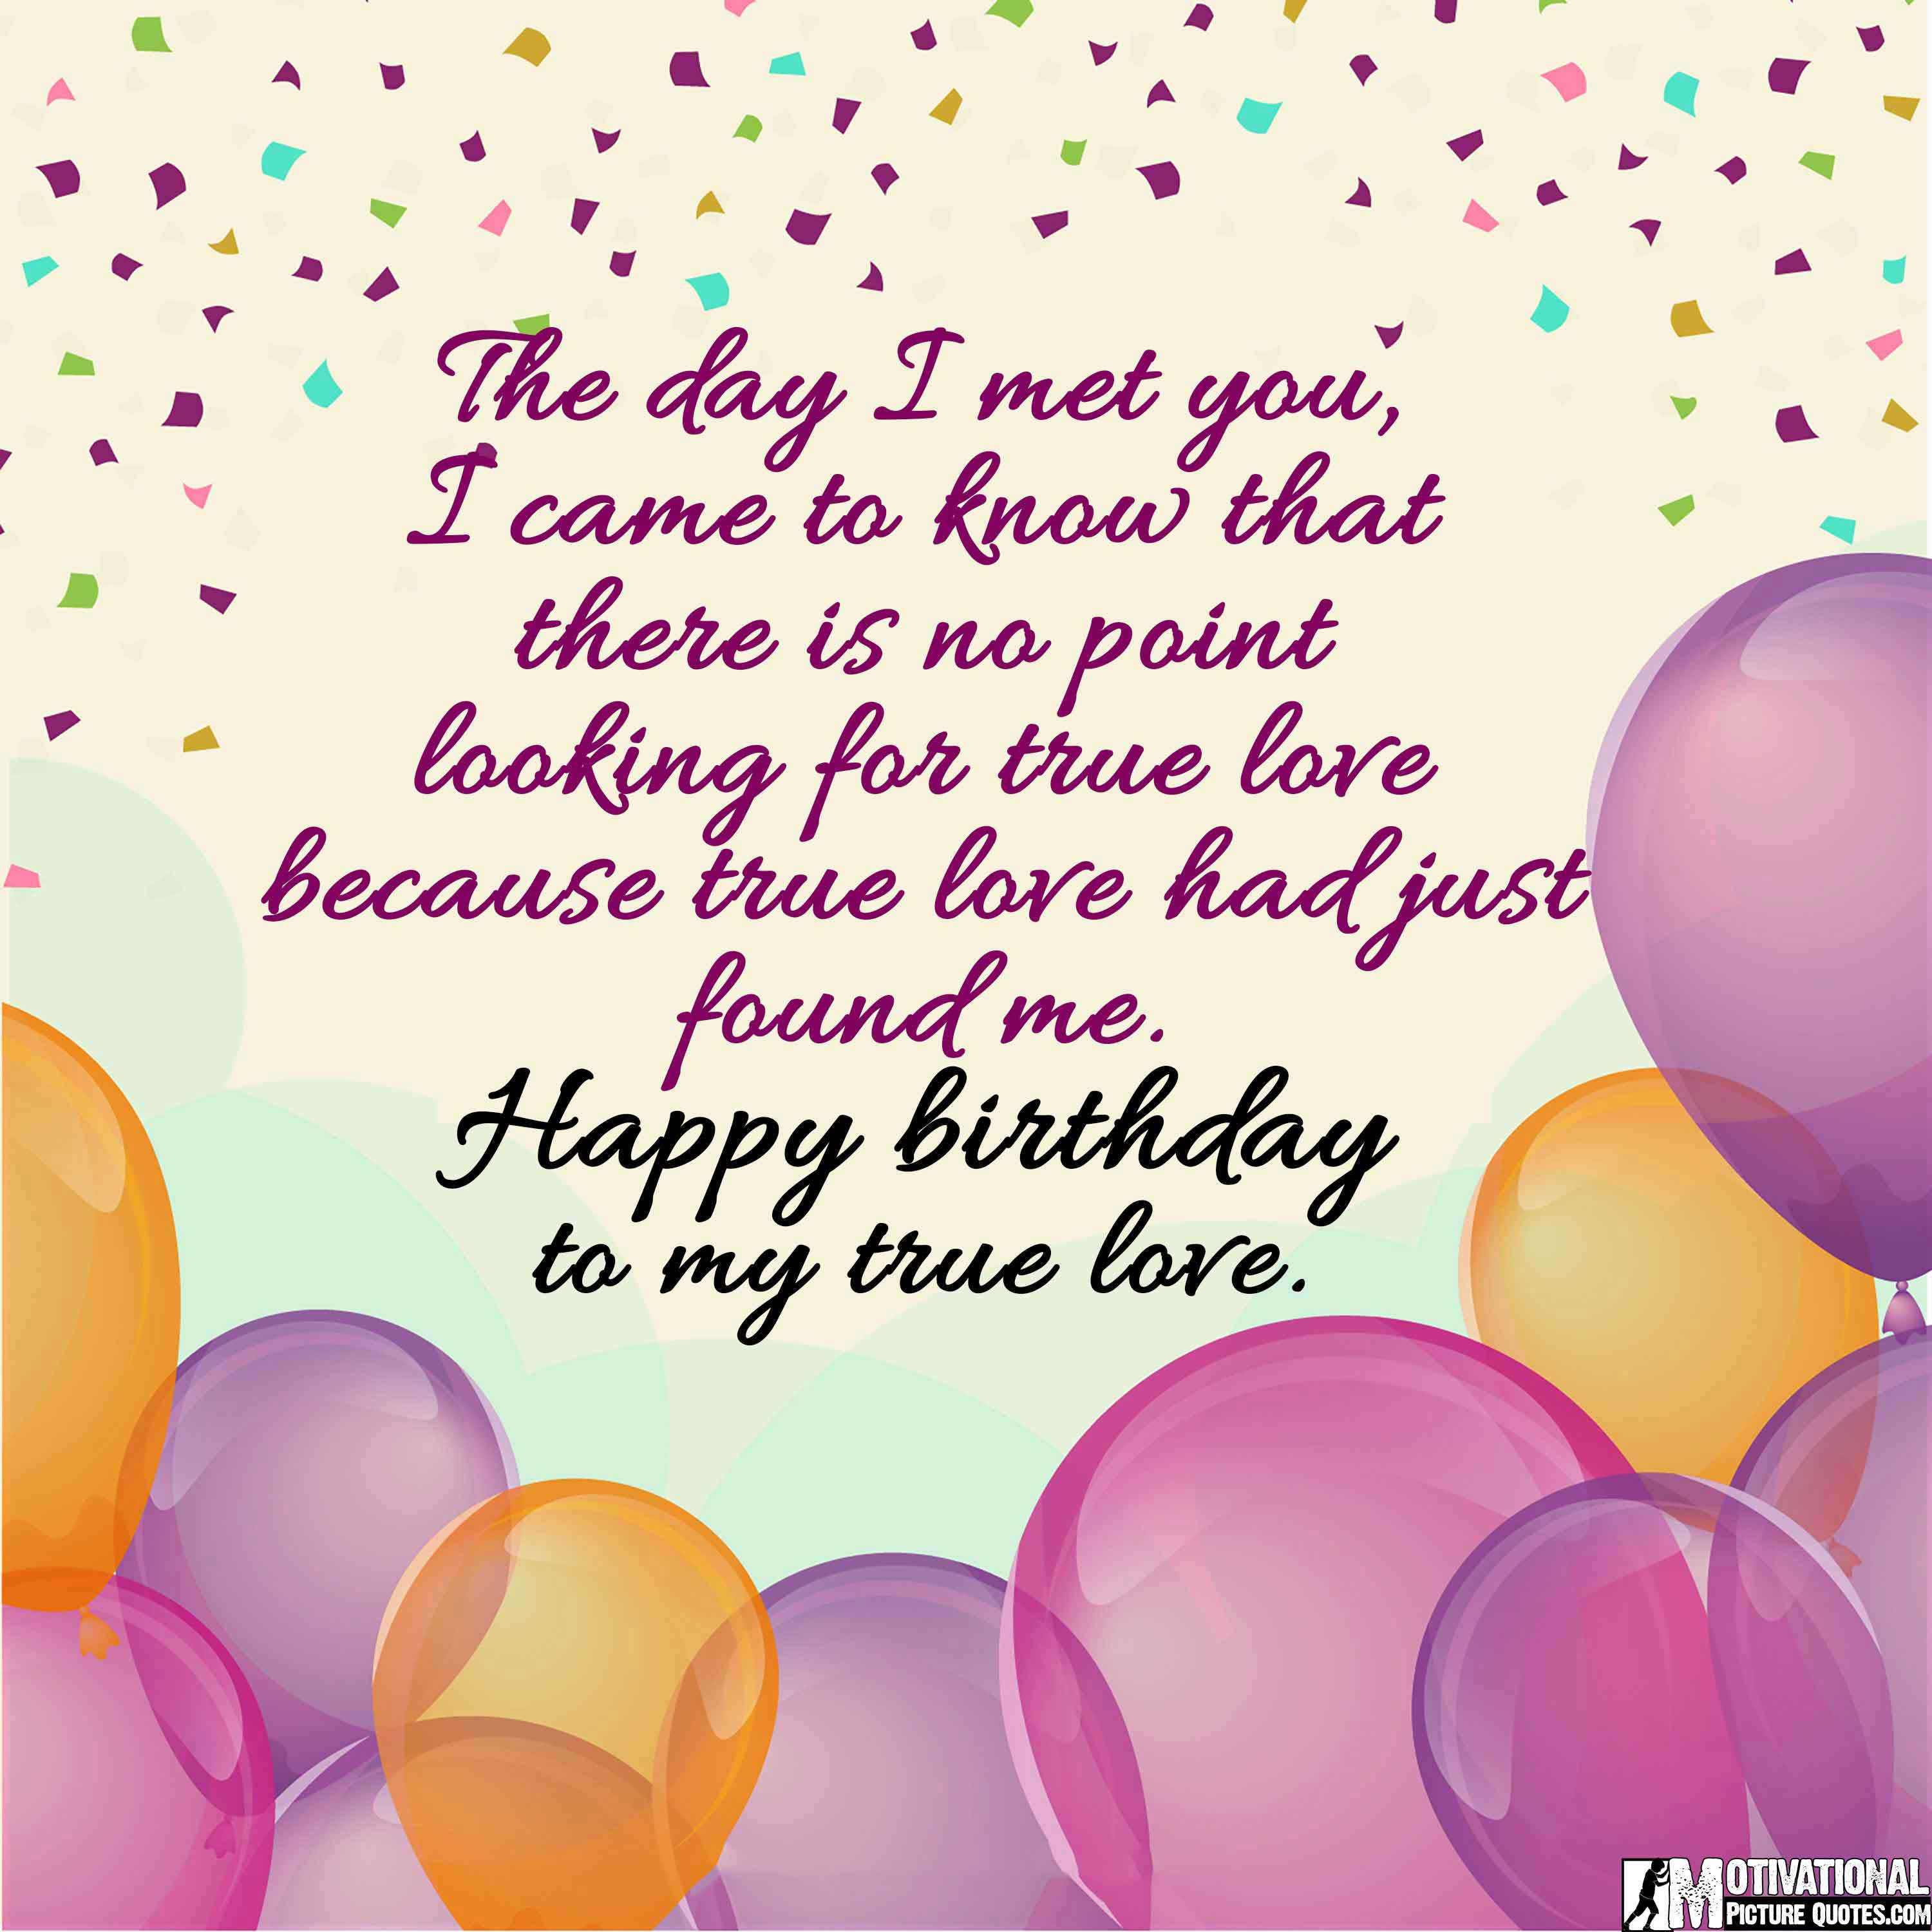 Best ideas about Birthday Quotes For Her . Save or Pin 35 Inspirational Birthday Quotes Now.